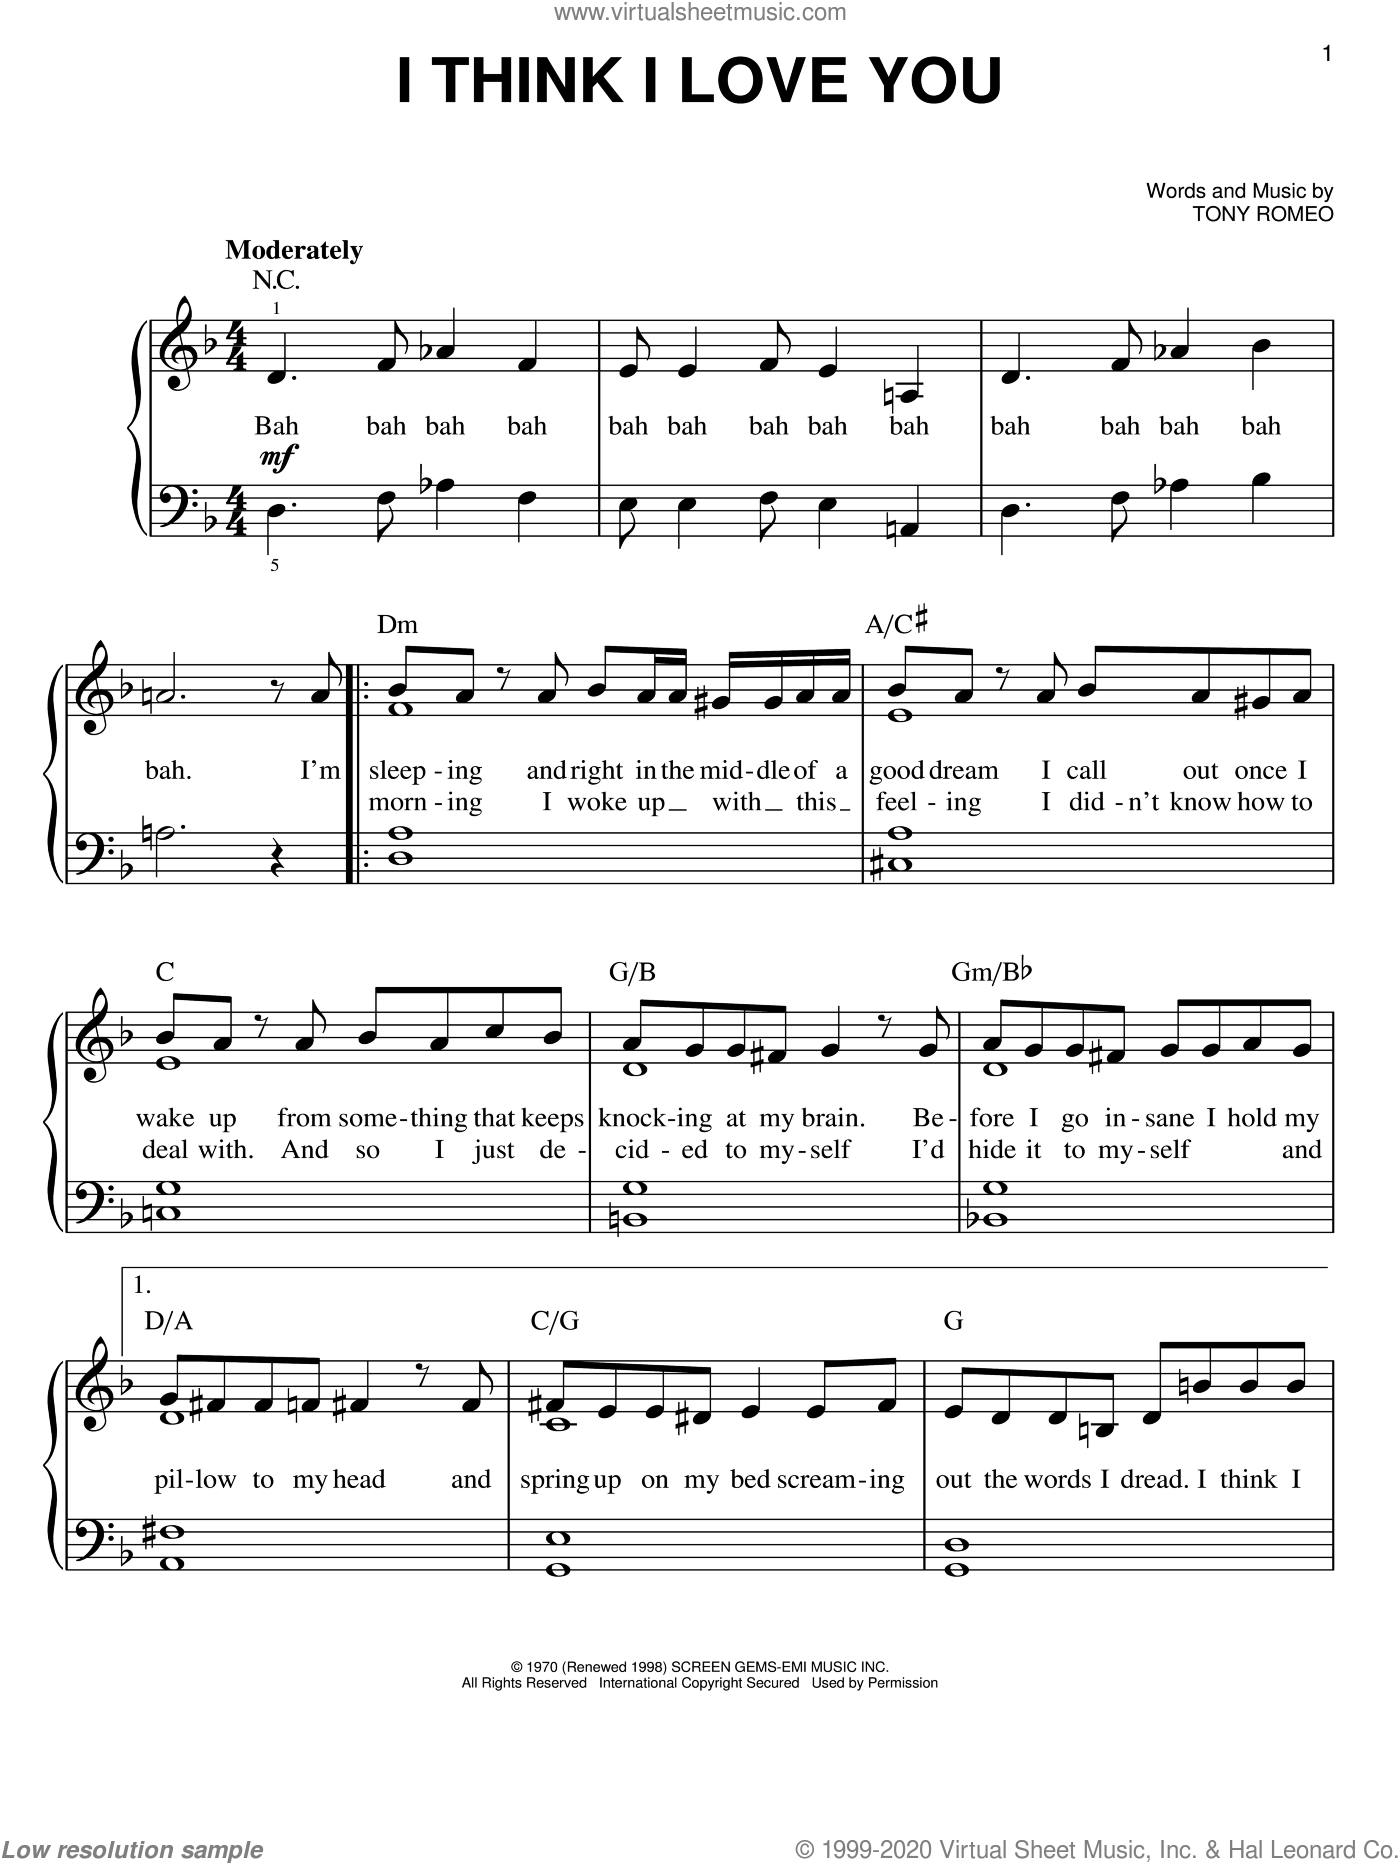 I Think I Love You sheet music for piano solo (chords) by Tony Romeo